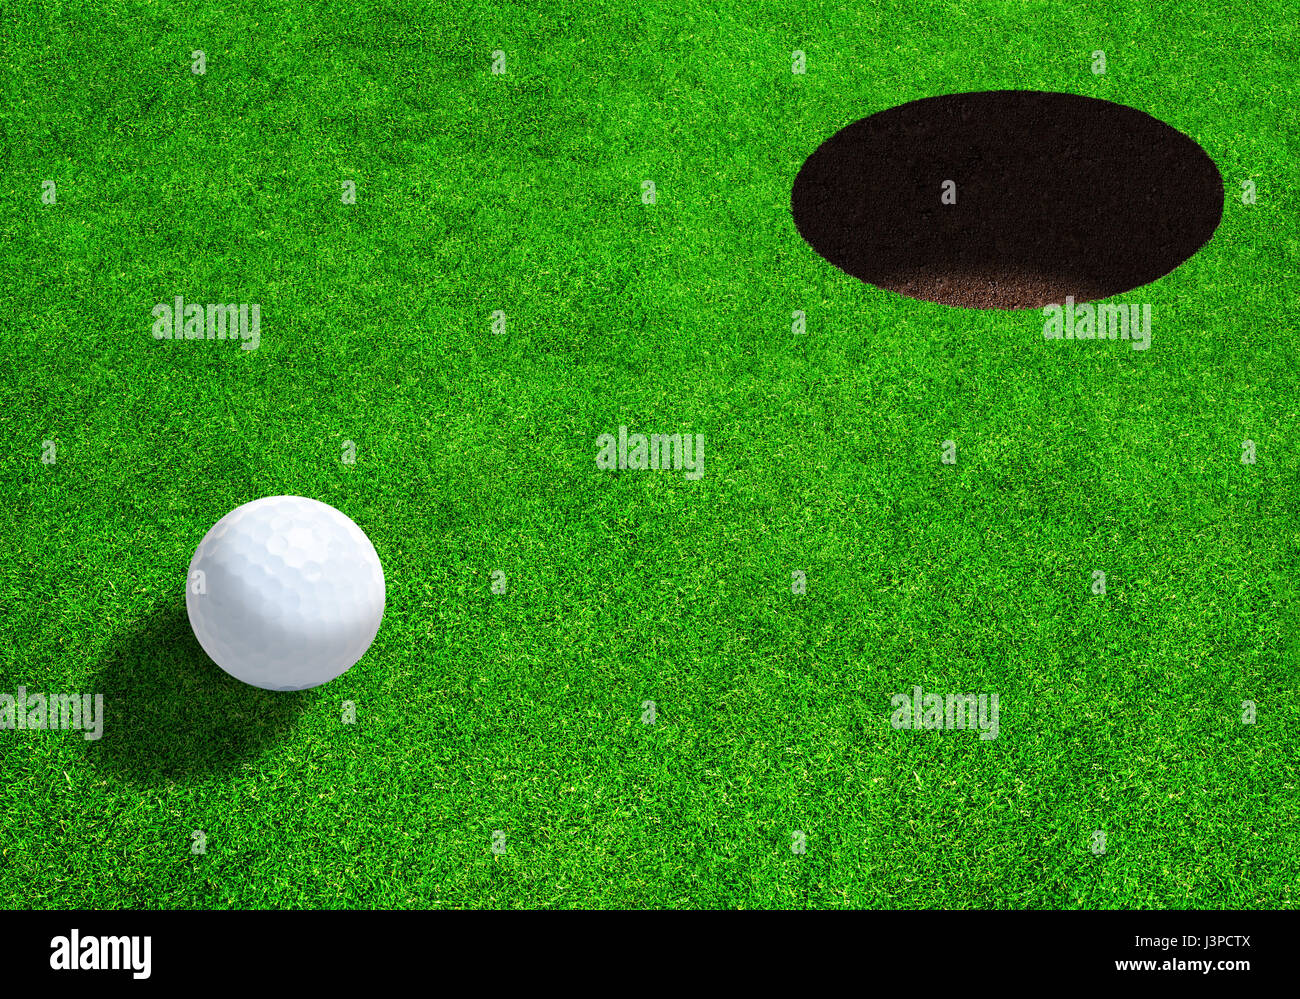 Golf ball close to hole on beautiful golf greens ready for par, eagle or bogey with copy space. - Stock Image